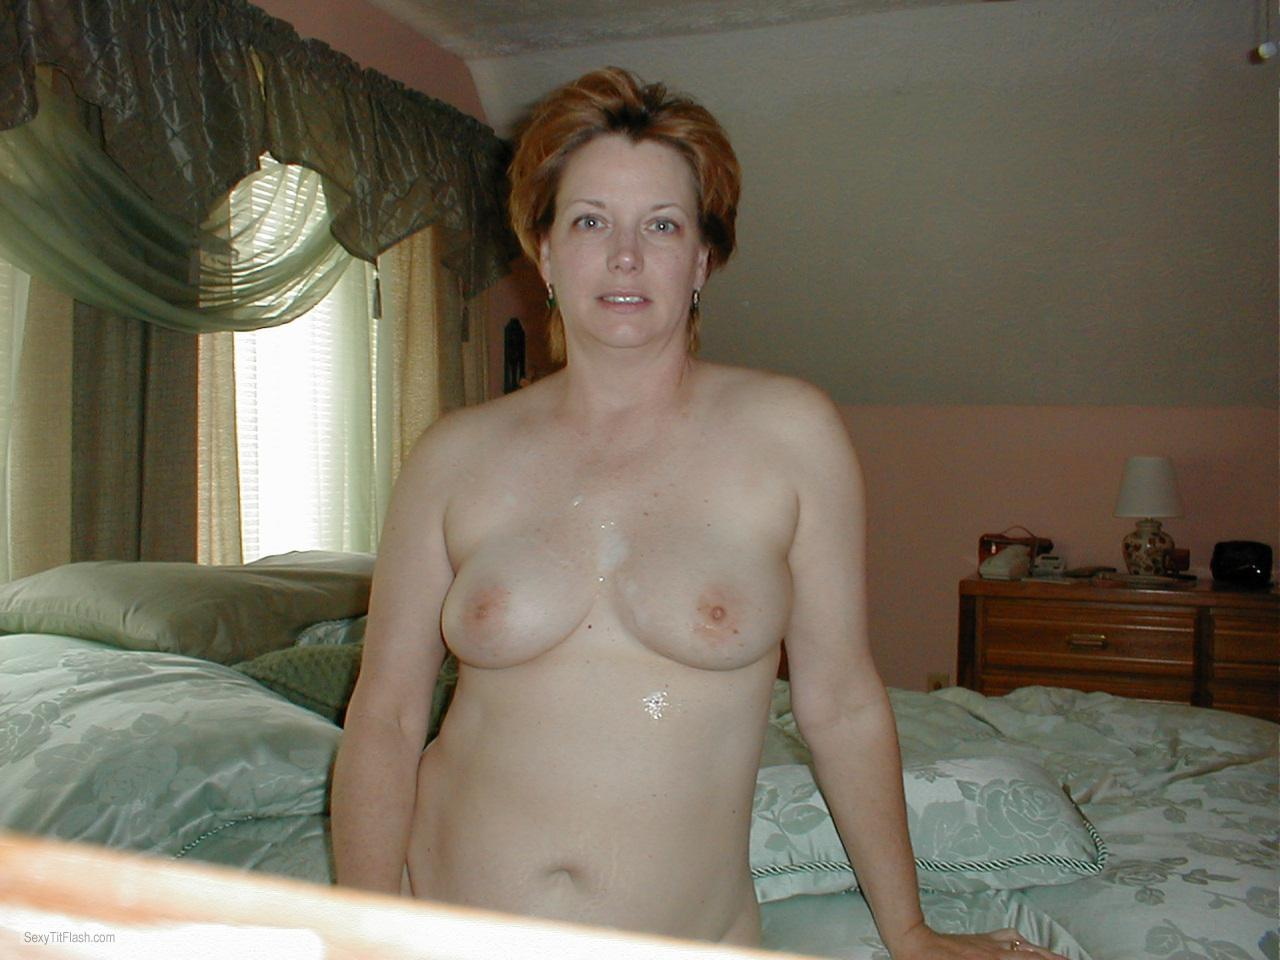 Medium Tits Of My Ex-Wife Topless Selfie by Funwanda